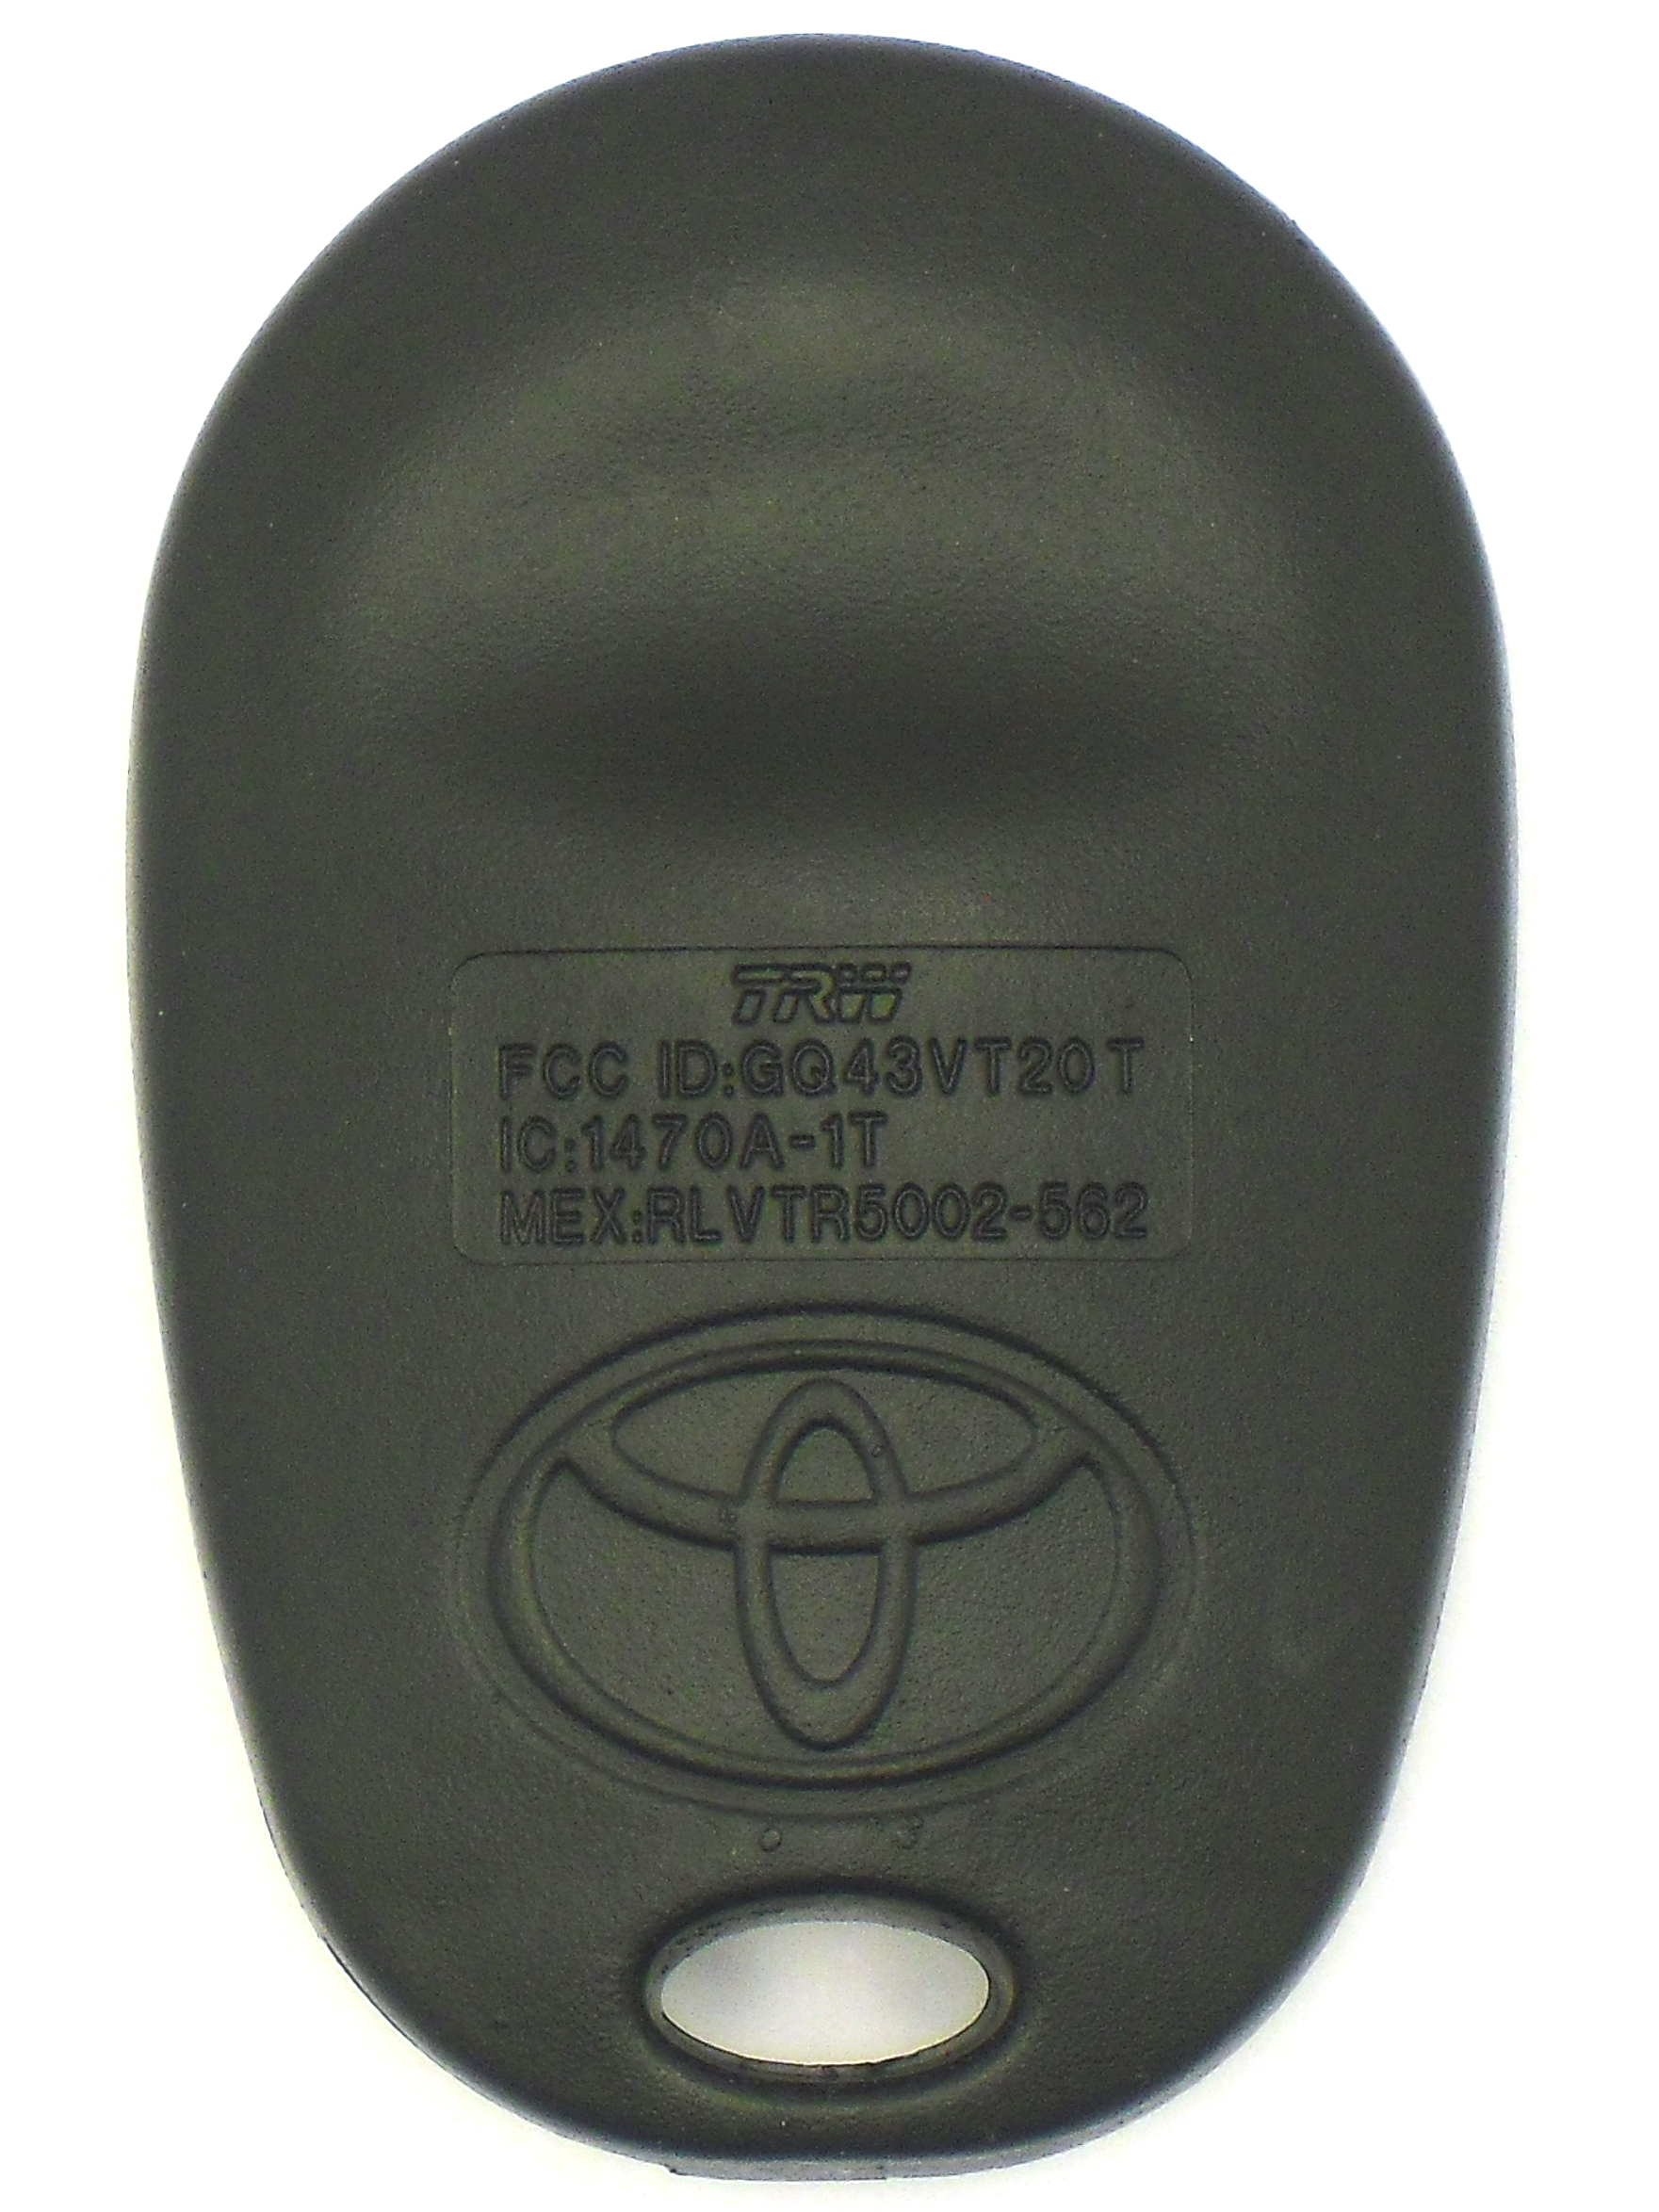 NEW Keyless Entry Remote Key Fob For a 2010 Toyota Sequoia 4 Buttons